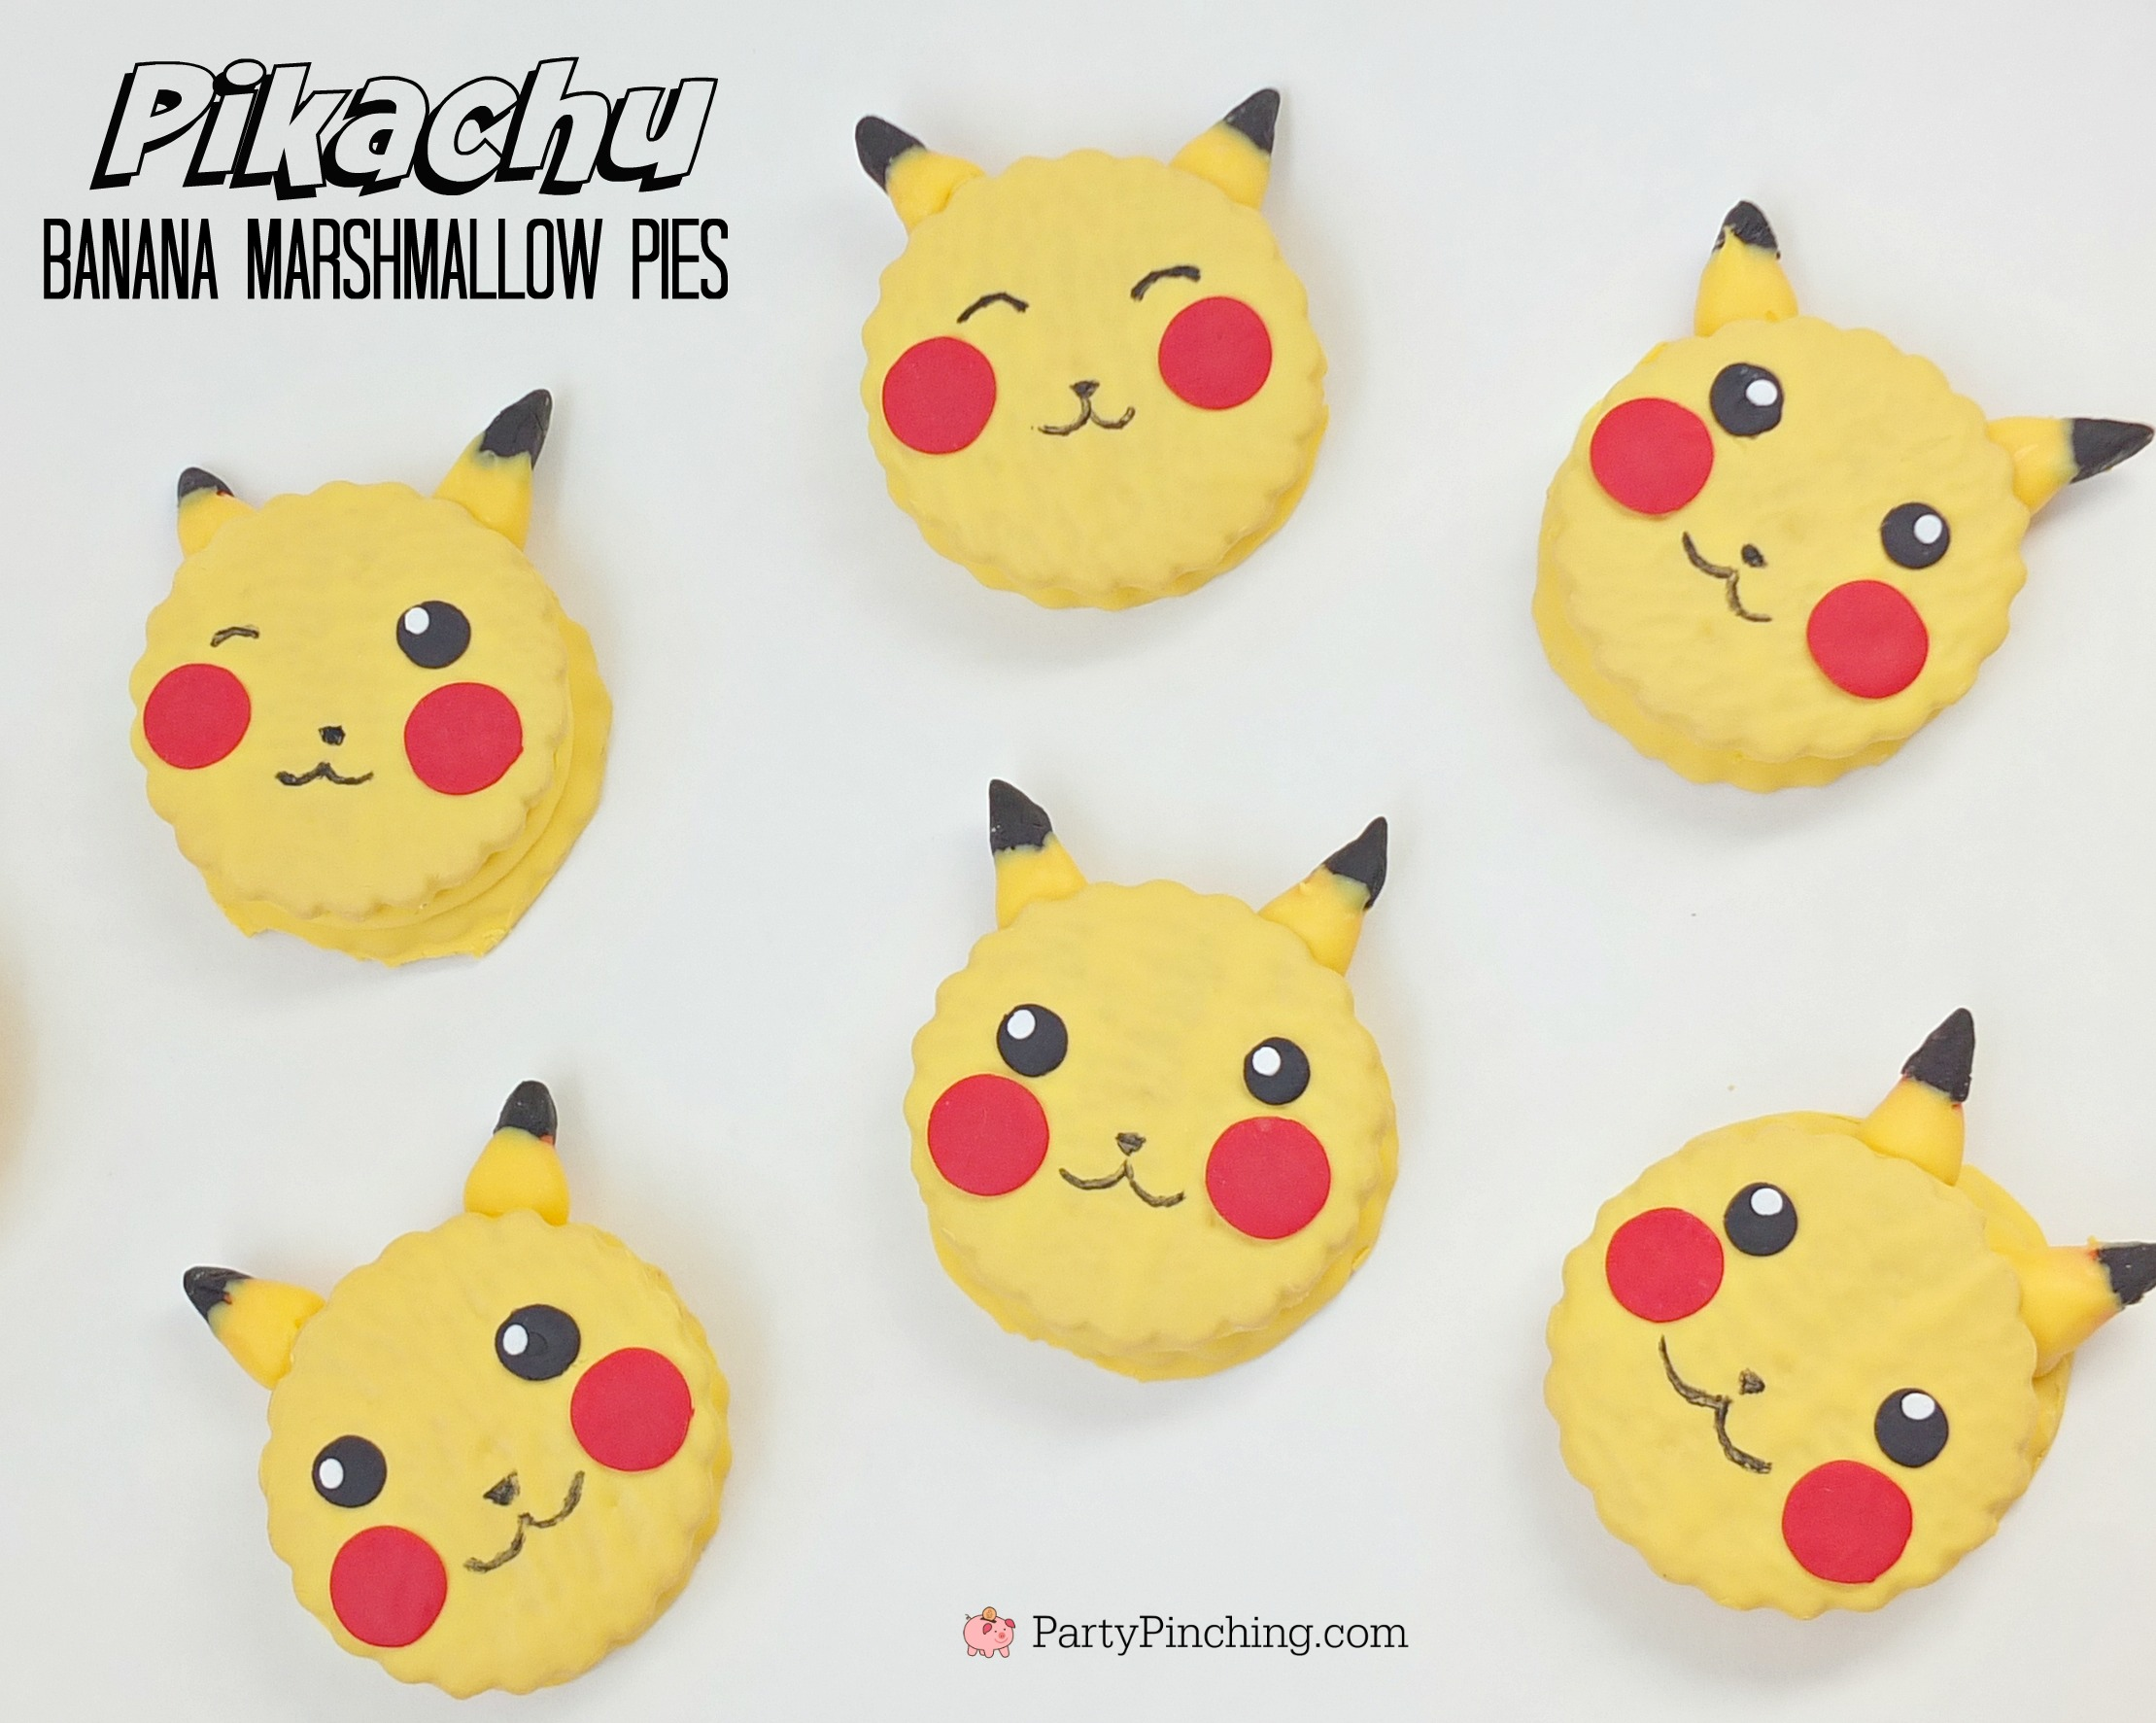 Pikachu banana marshmallow pies, Little Debbie Banana Marshmallow Pies, Pokemon dessert food party ideas, cute Pikachu dessert treat snack cake, easy recipe Pokemon theme, kid friendly food, fun food for kids, cute food, sweet treats